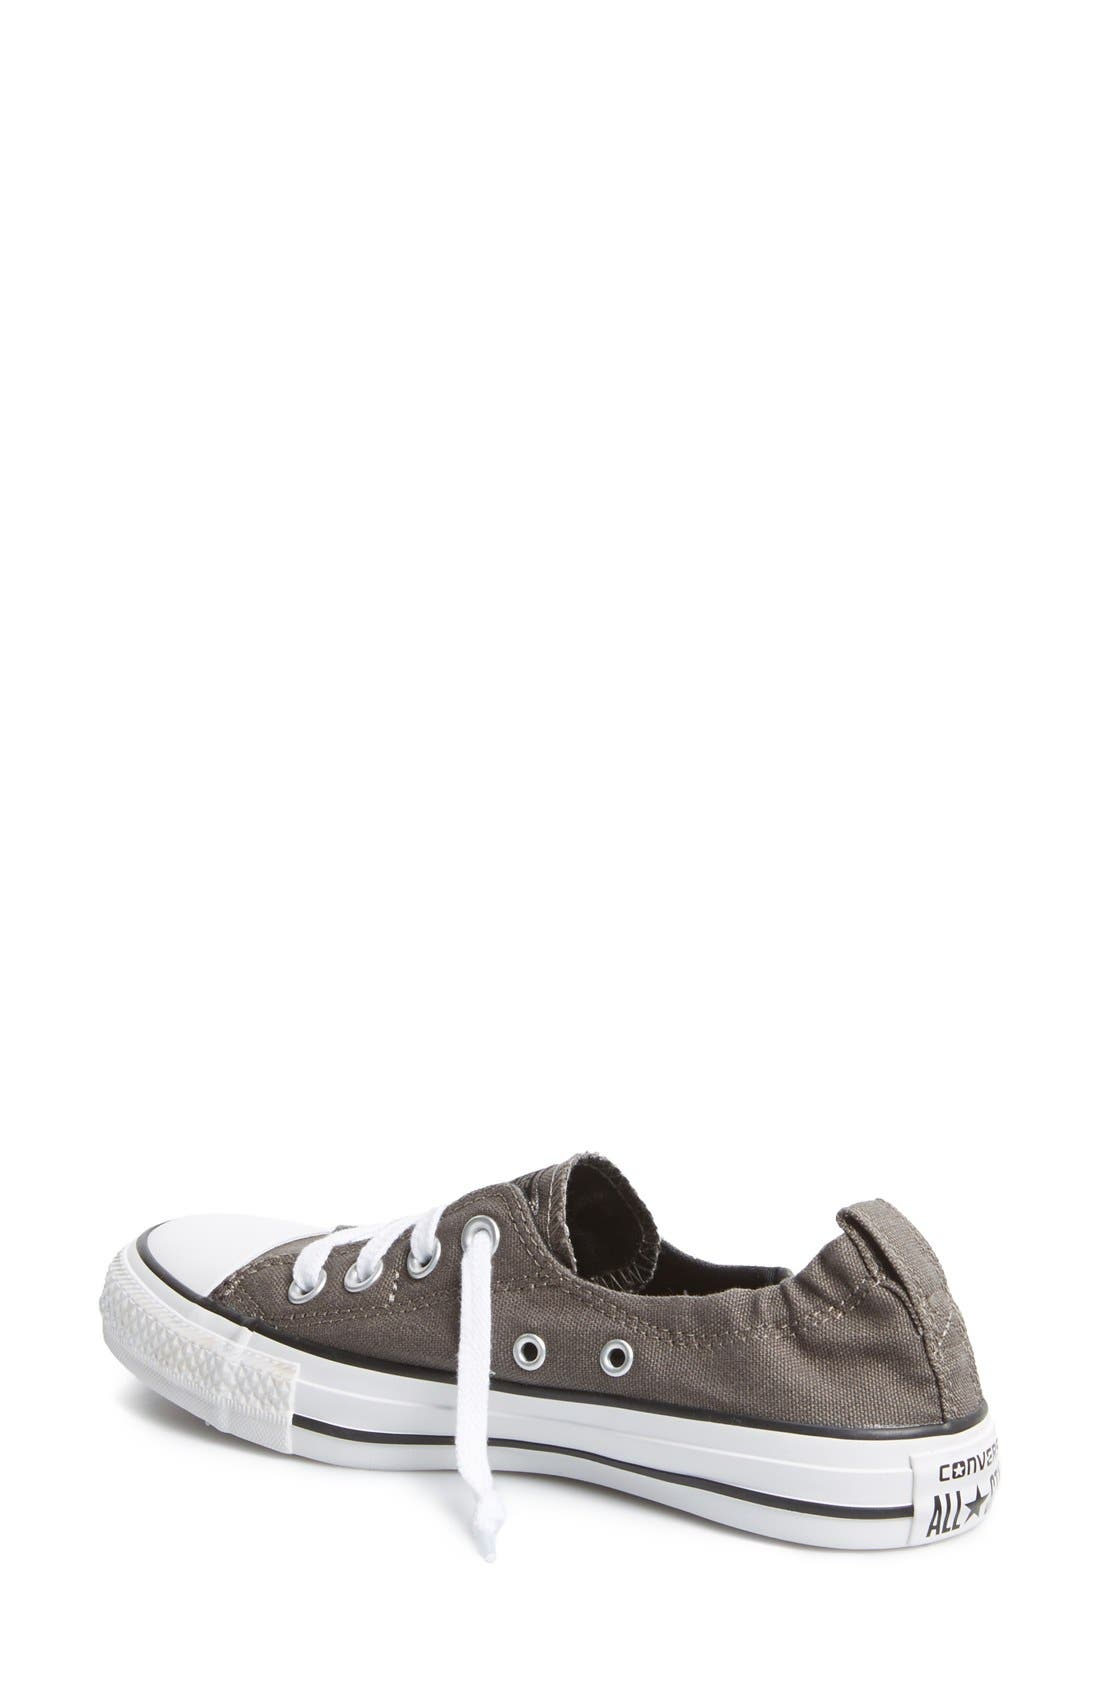 Alternate Image 2  - Converse Chuck Taylor® All Star® Shoreline Low Top Sneaker (Women)